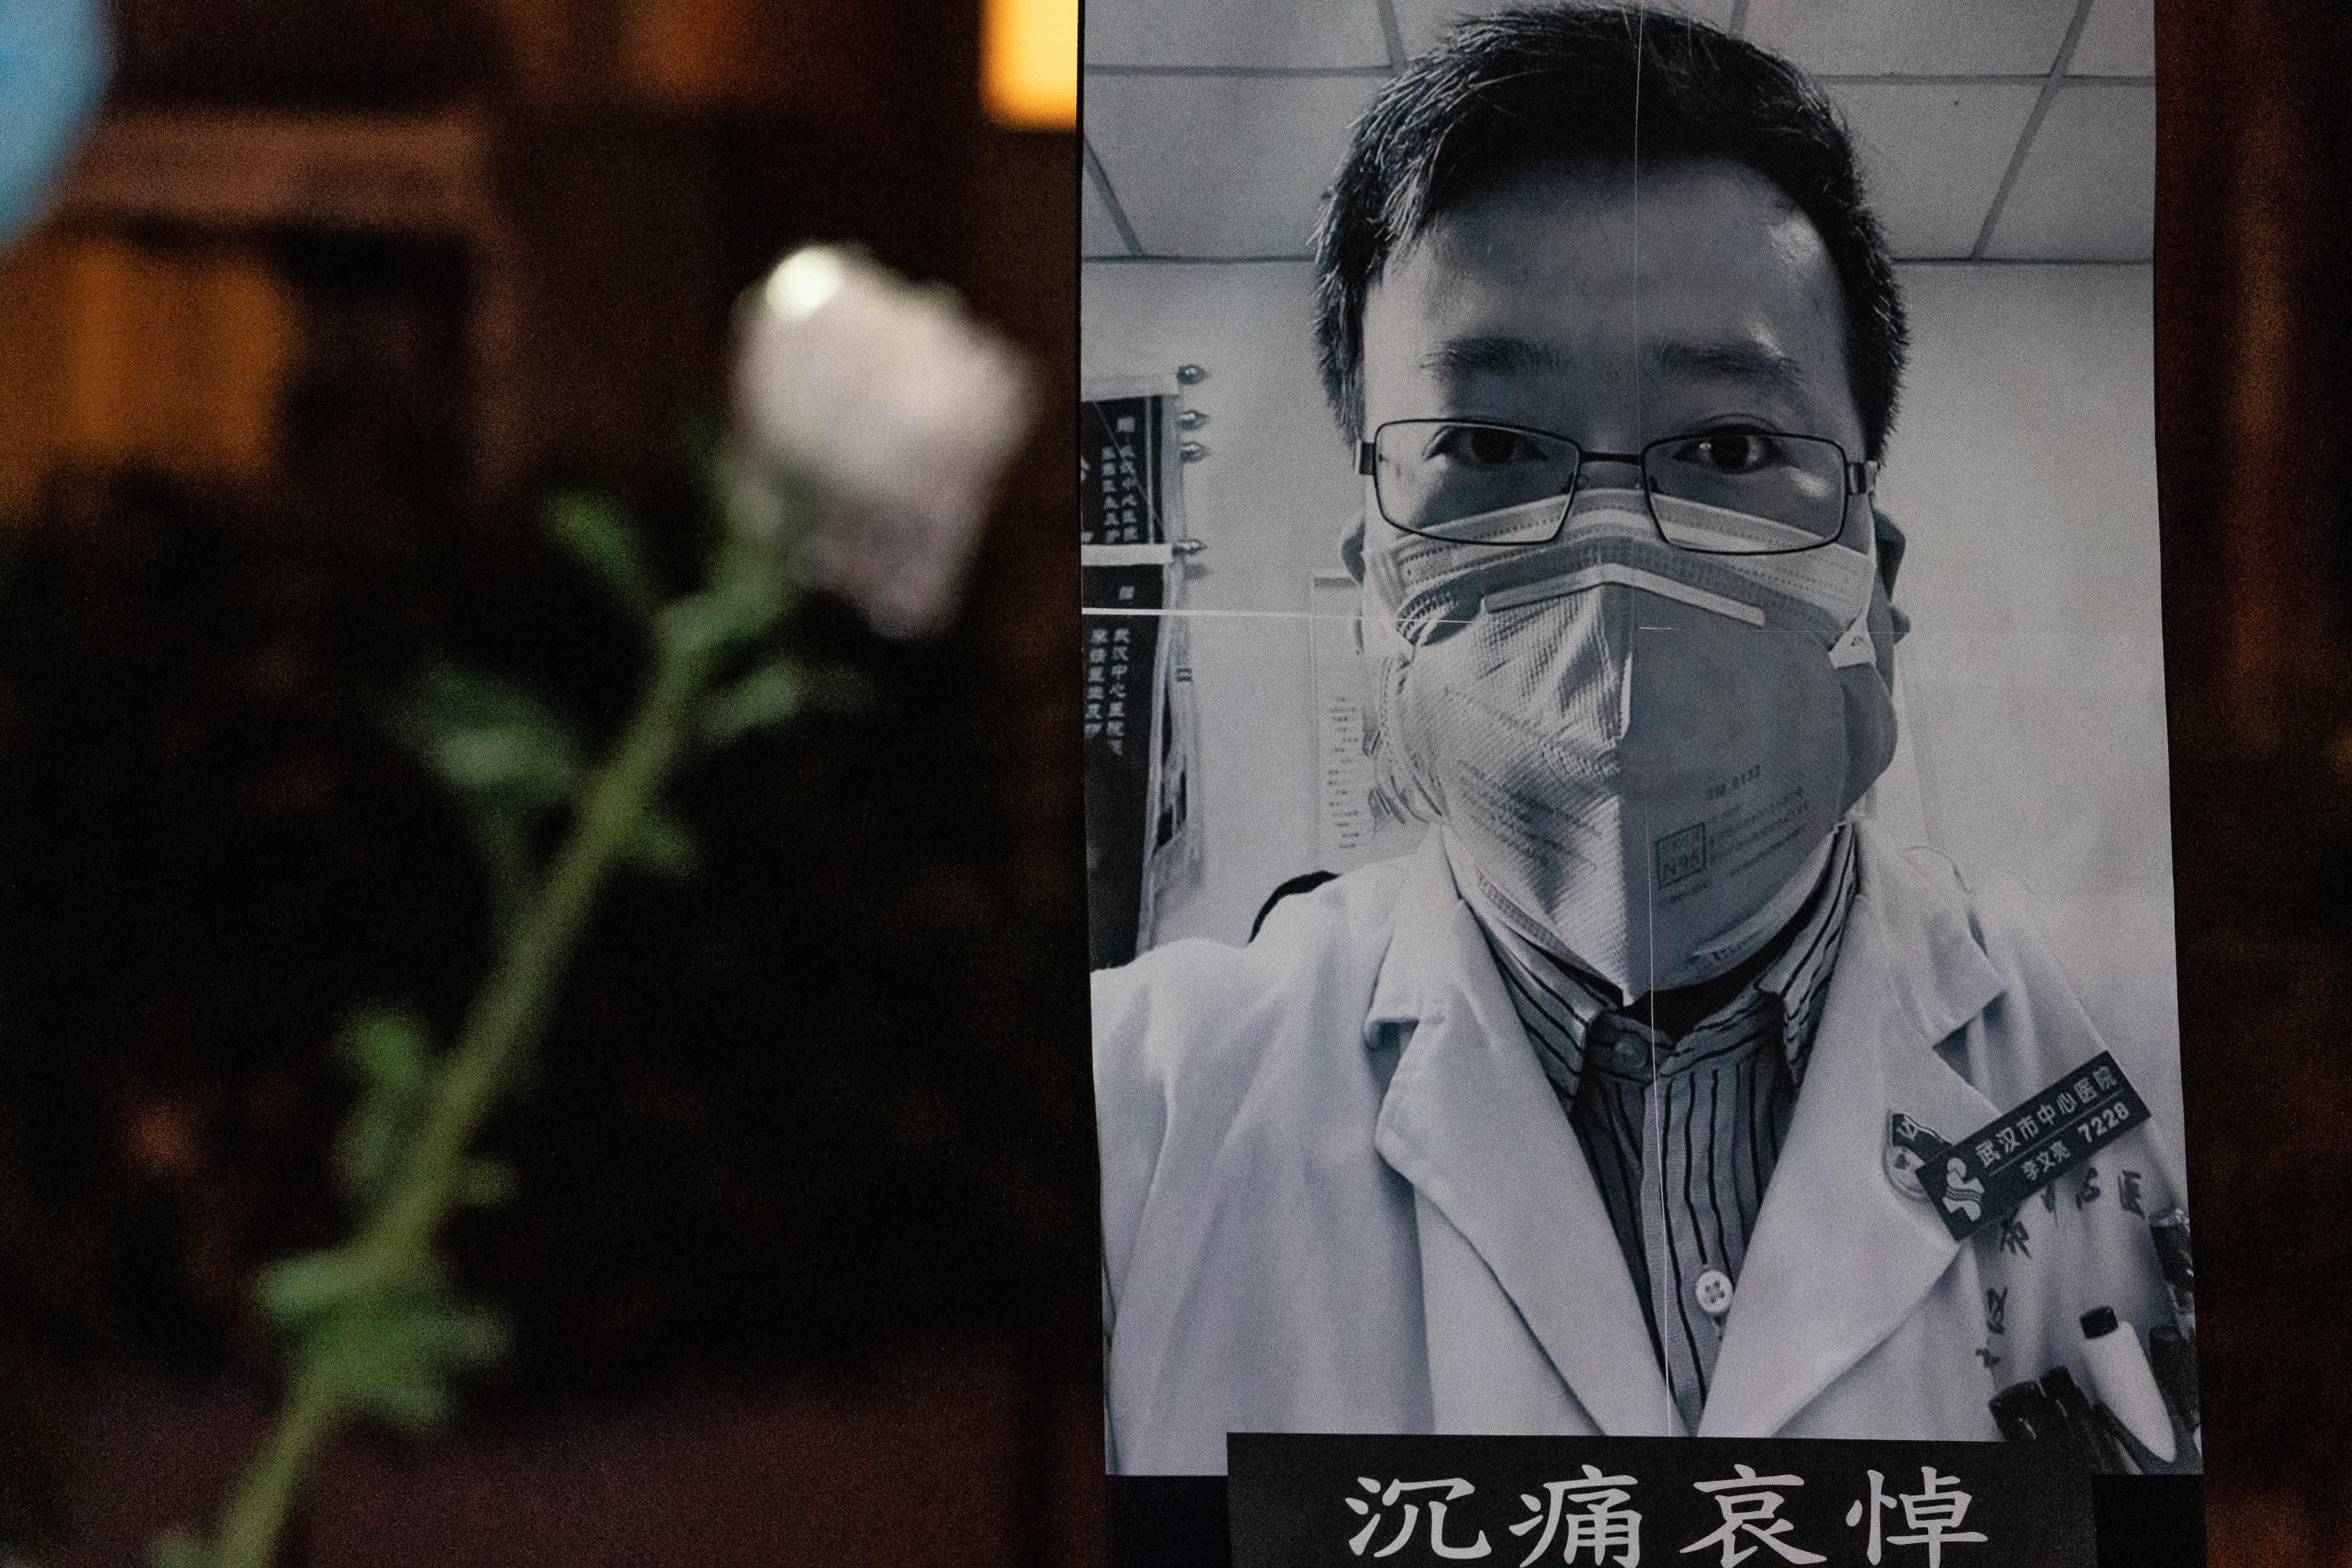 People attend a vigil to mourn for doctor Li Wenliang on February 7, 2020 in Hong Kong, China. (Photo by Anthony Kwan/Getty Images)